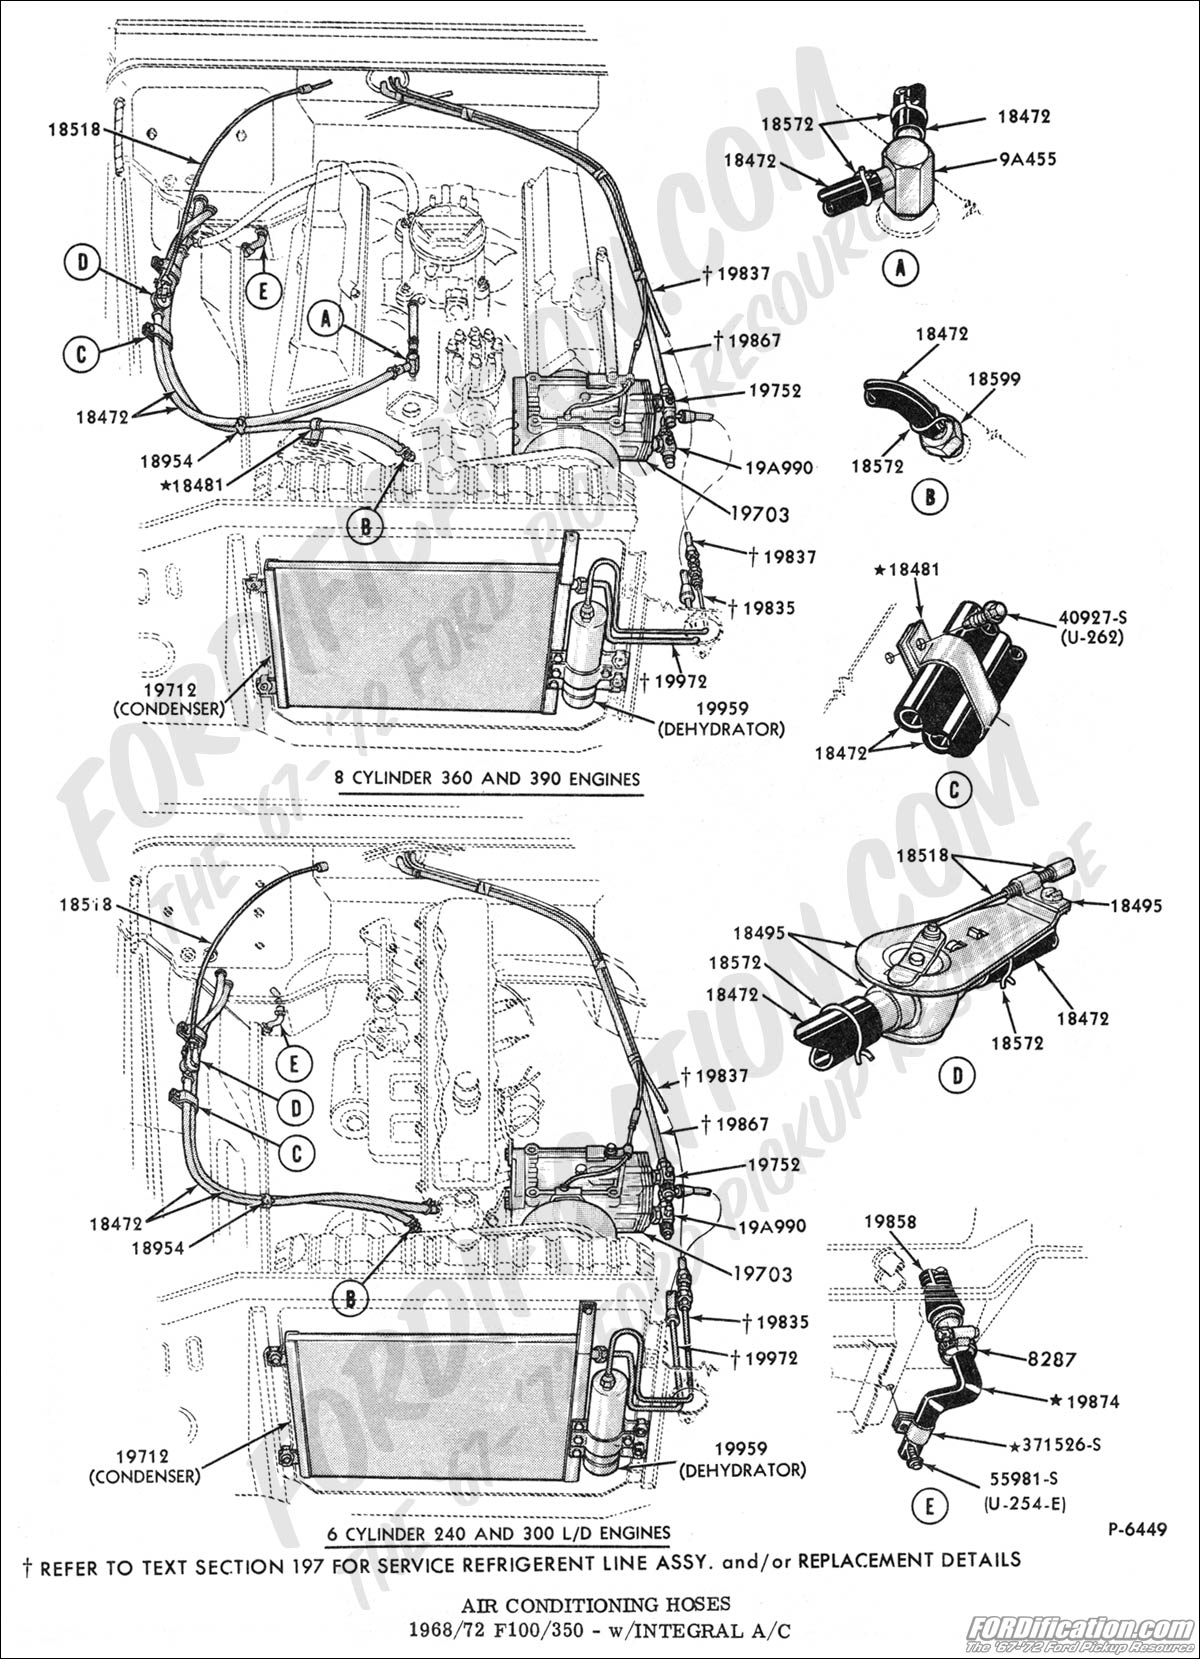 2005 Ford F150 Interior Parts Diagram in addition 4 0 V6 Ford Explorer 2004 Engine Diagram additionally 2011 Ford Flex Fuse Box Diagram moreover 1983 Ford F 150 Air Conditioning Diagram further Crown Vic Police Interceptor Engine. on fuse box replacement on 2003 ford expedition